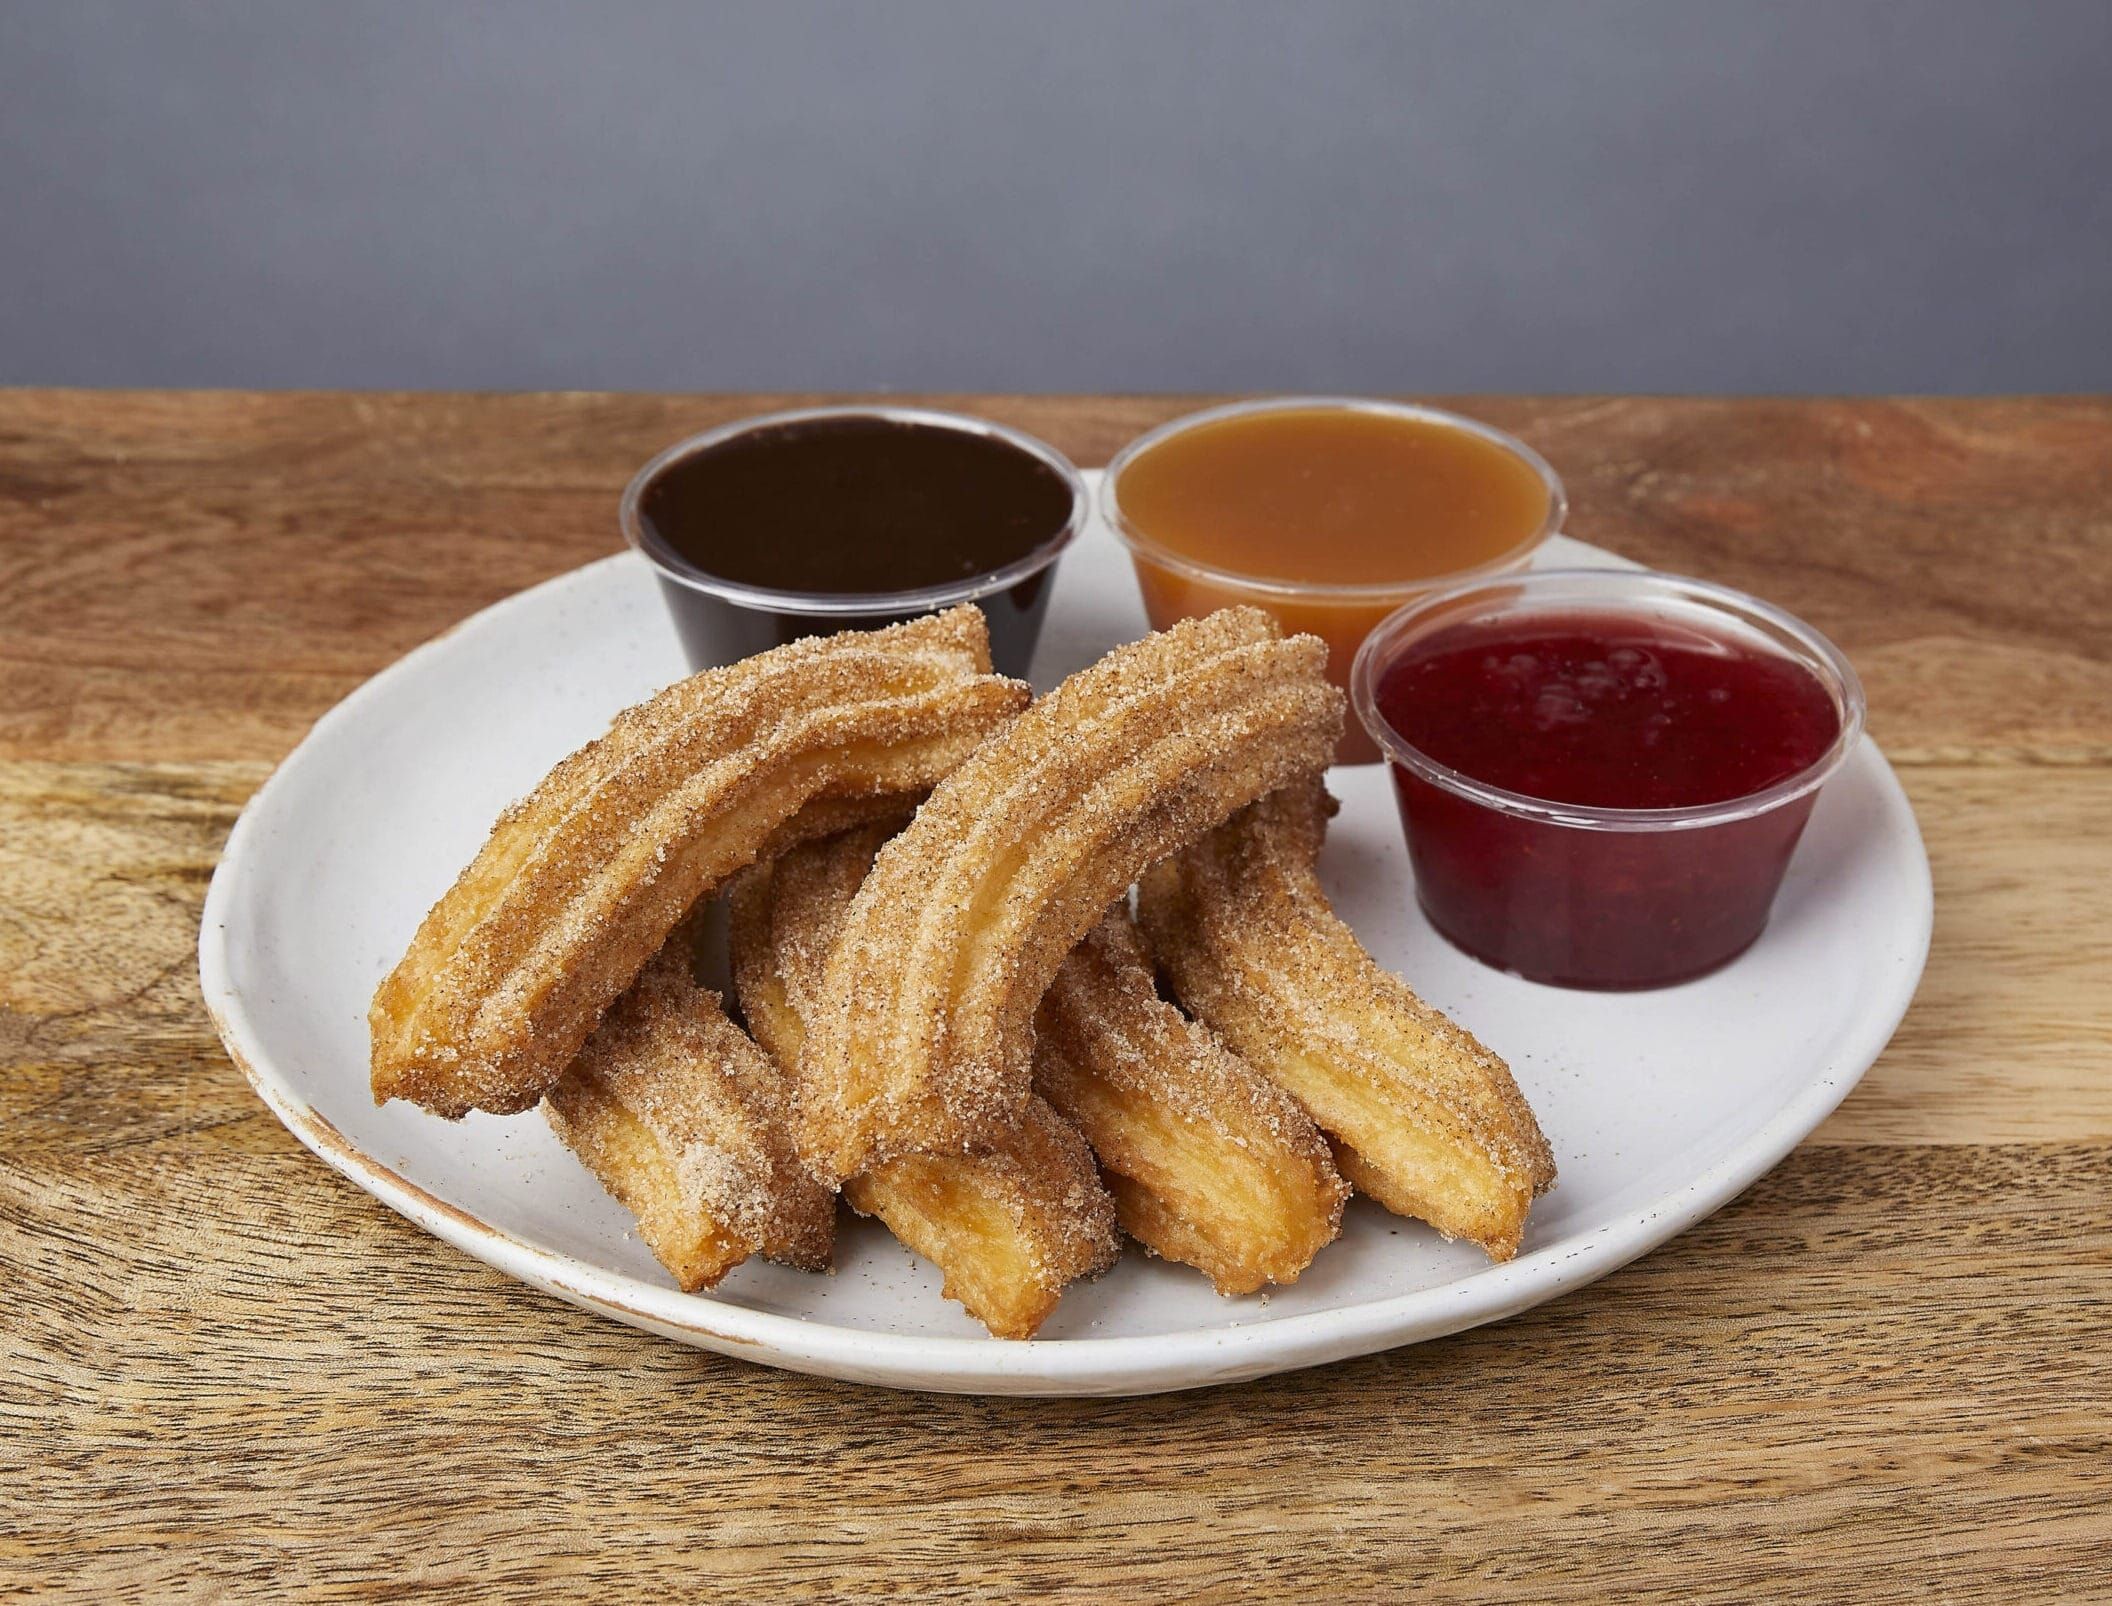 Image of churros with dipping sauces